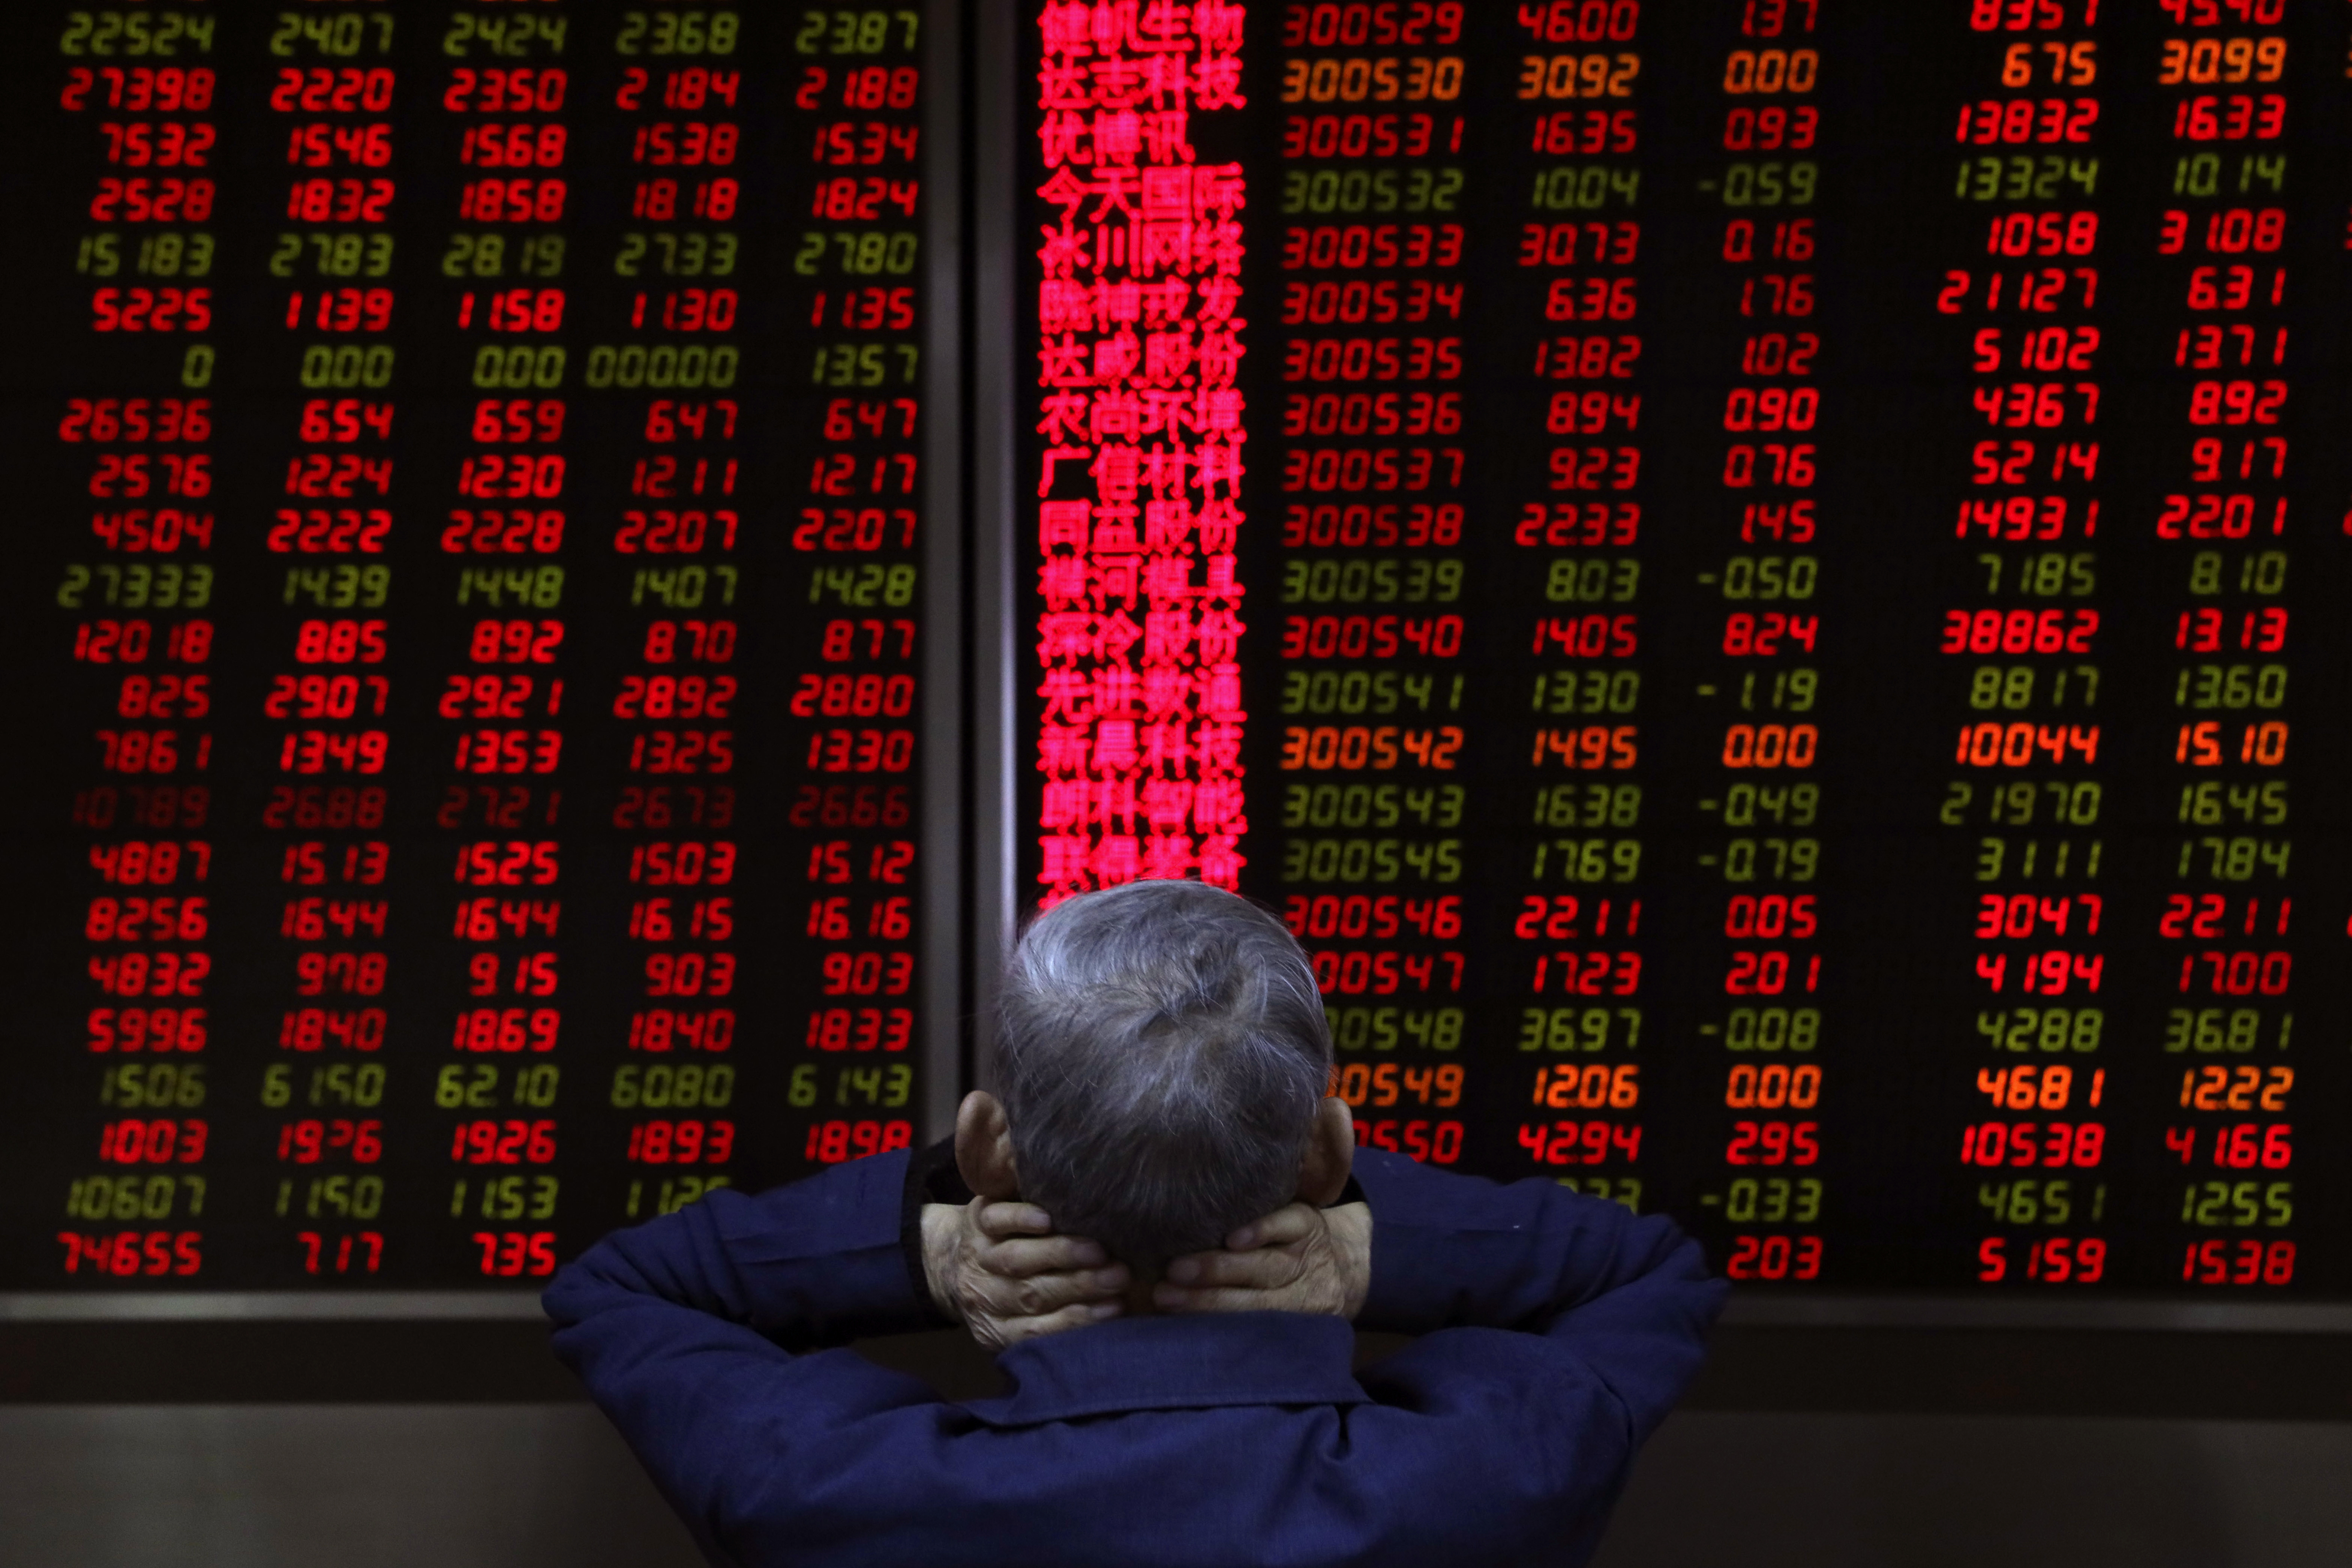 A man monitors stock prices at a brokerage in Beijing, China, Thursday, Nov. 8, 2018. Asian markets rose on Thursday after the U.S. midterm elections went as expected, soothing fears of a sudden shift on trade and economic policies.(AP Photo/Ng Han Guan)